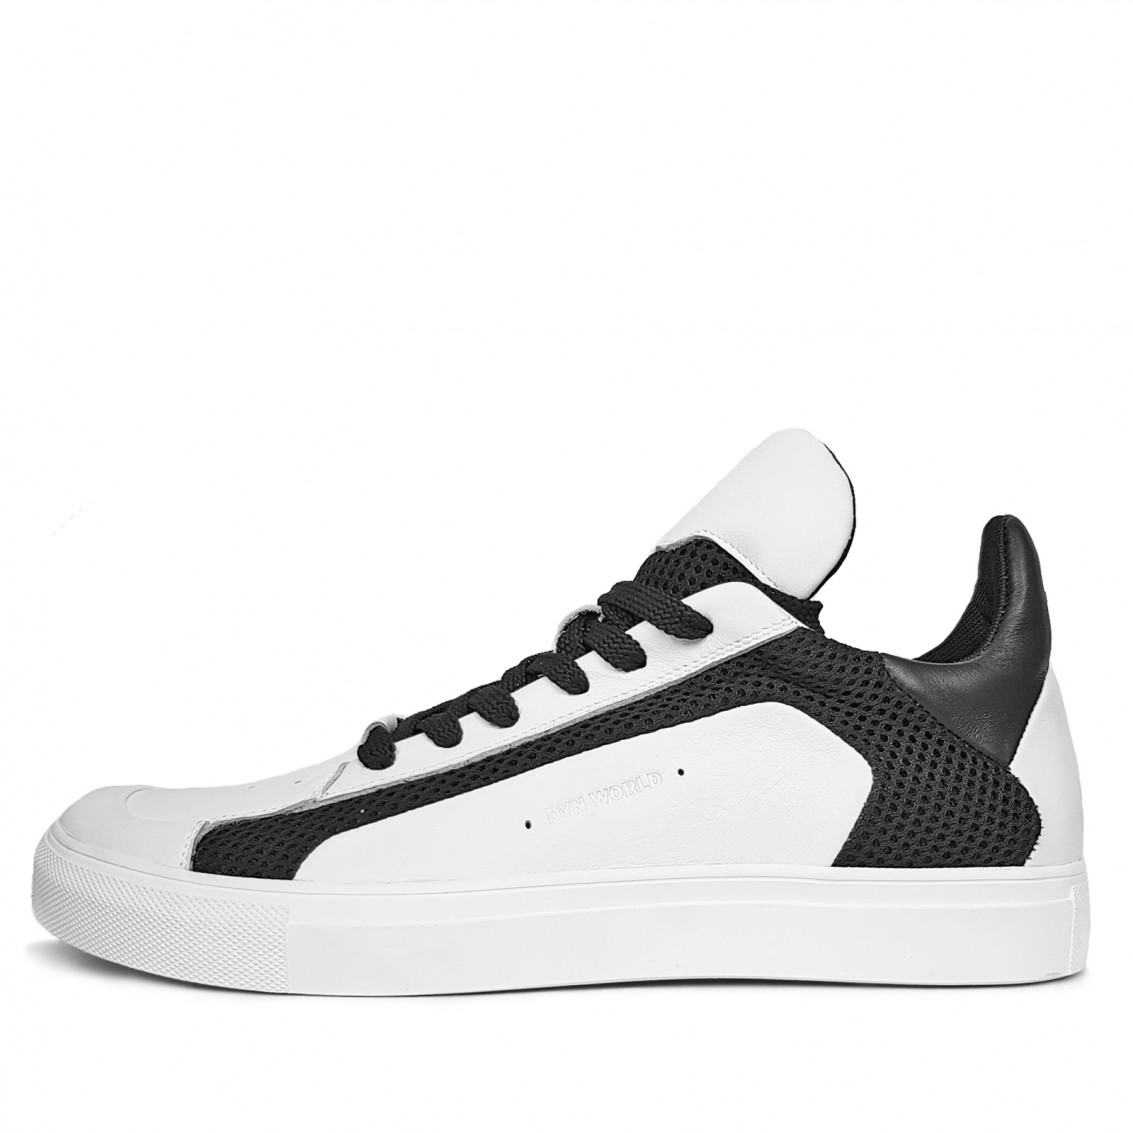 Men's low-top sneakers